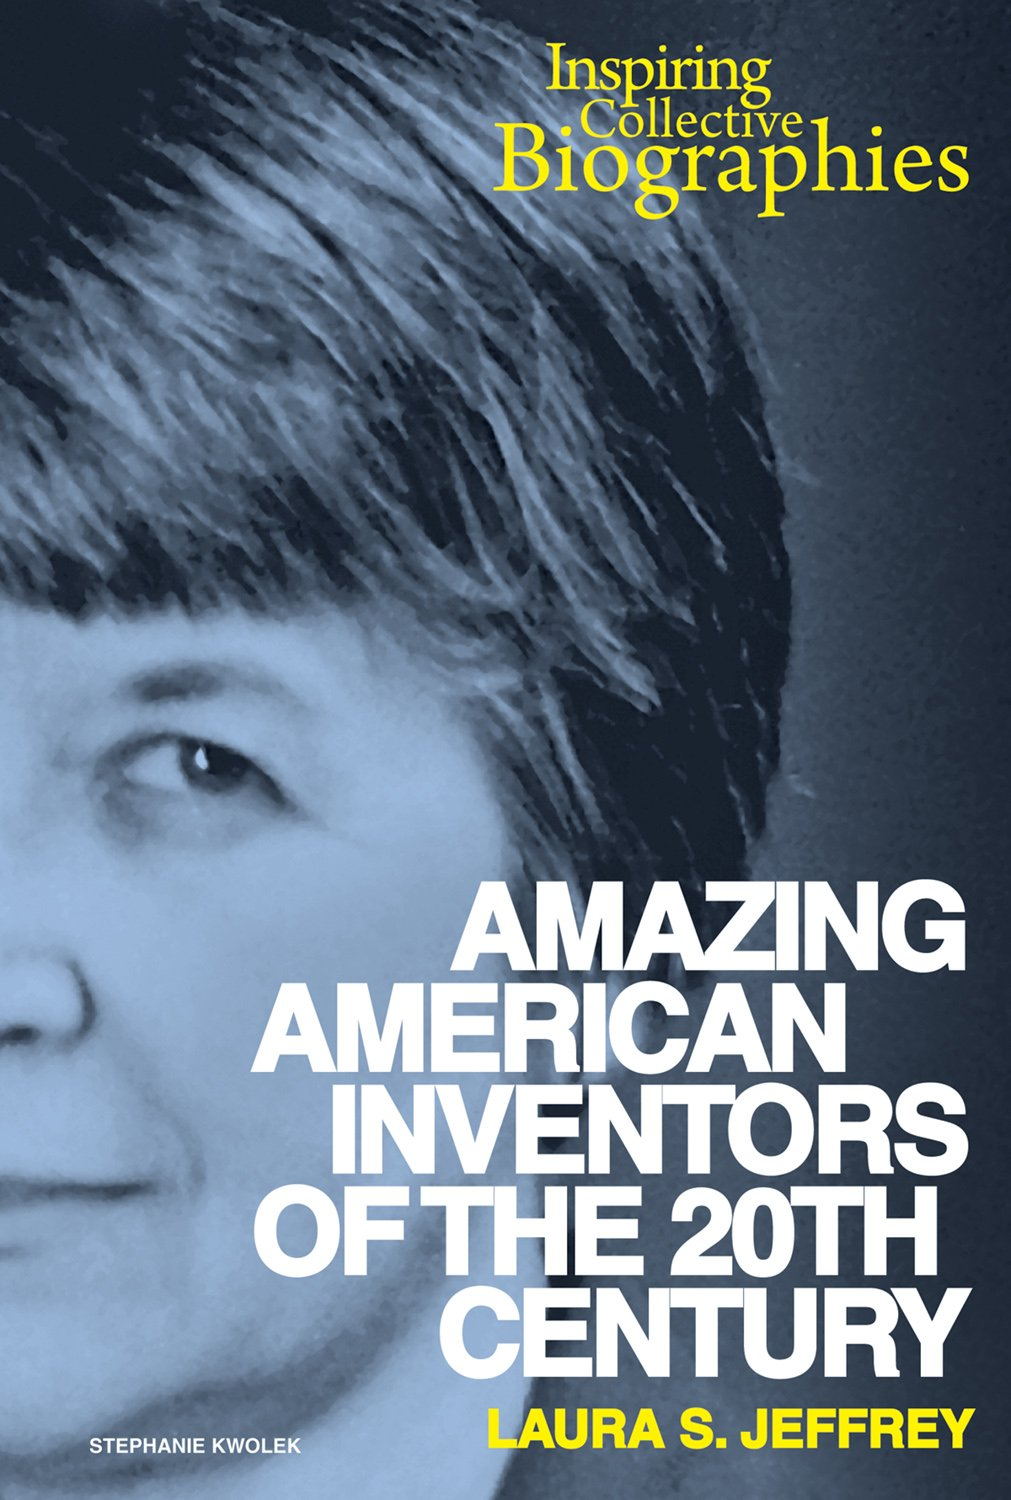 Download Amazing American Inventors of the 20th Century (Inspiring Collective Biographies) pdf epub